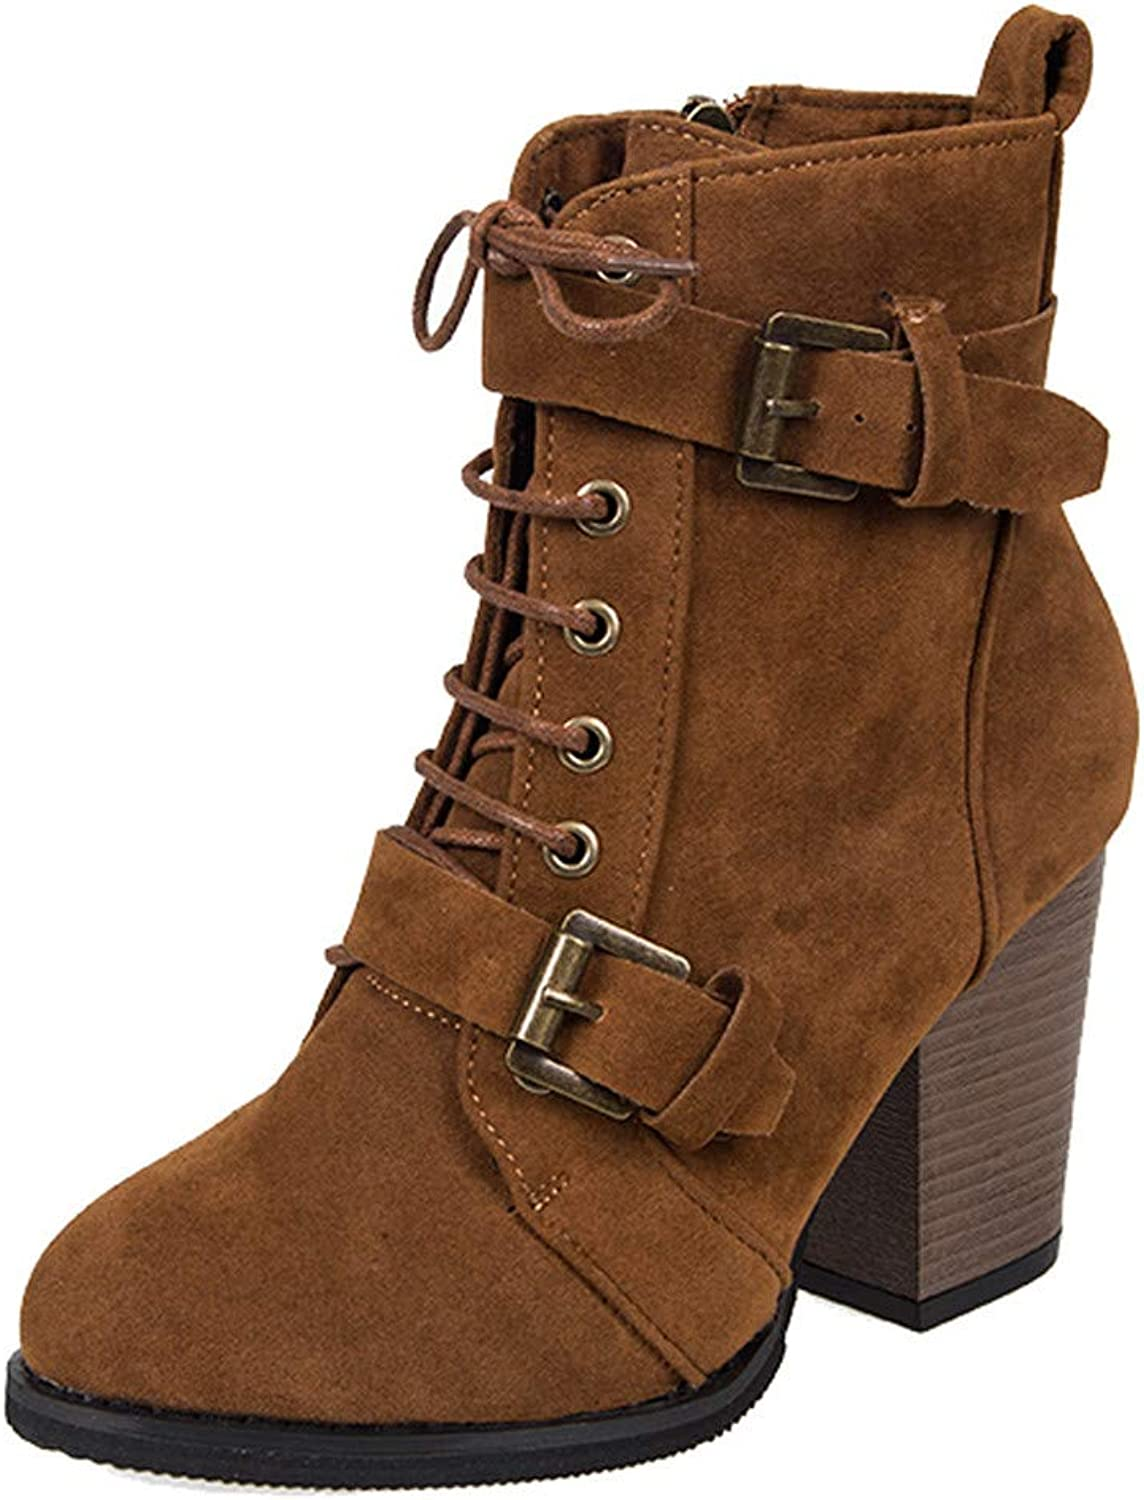 Ladies Fashion Women's Winter Solid color High Heel shoes Casual Lace-Up Suede Sexy Ankle Zipper Martin Boots Keep Warm Round Toe shoes